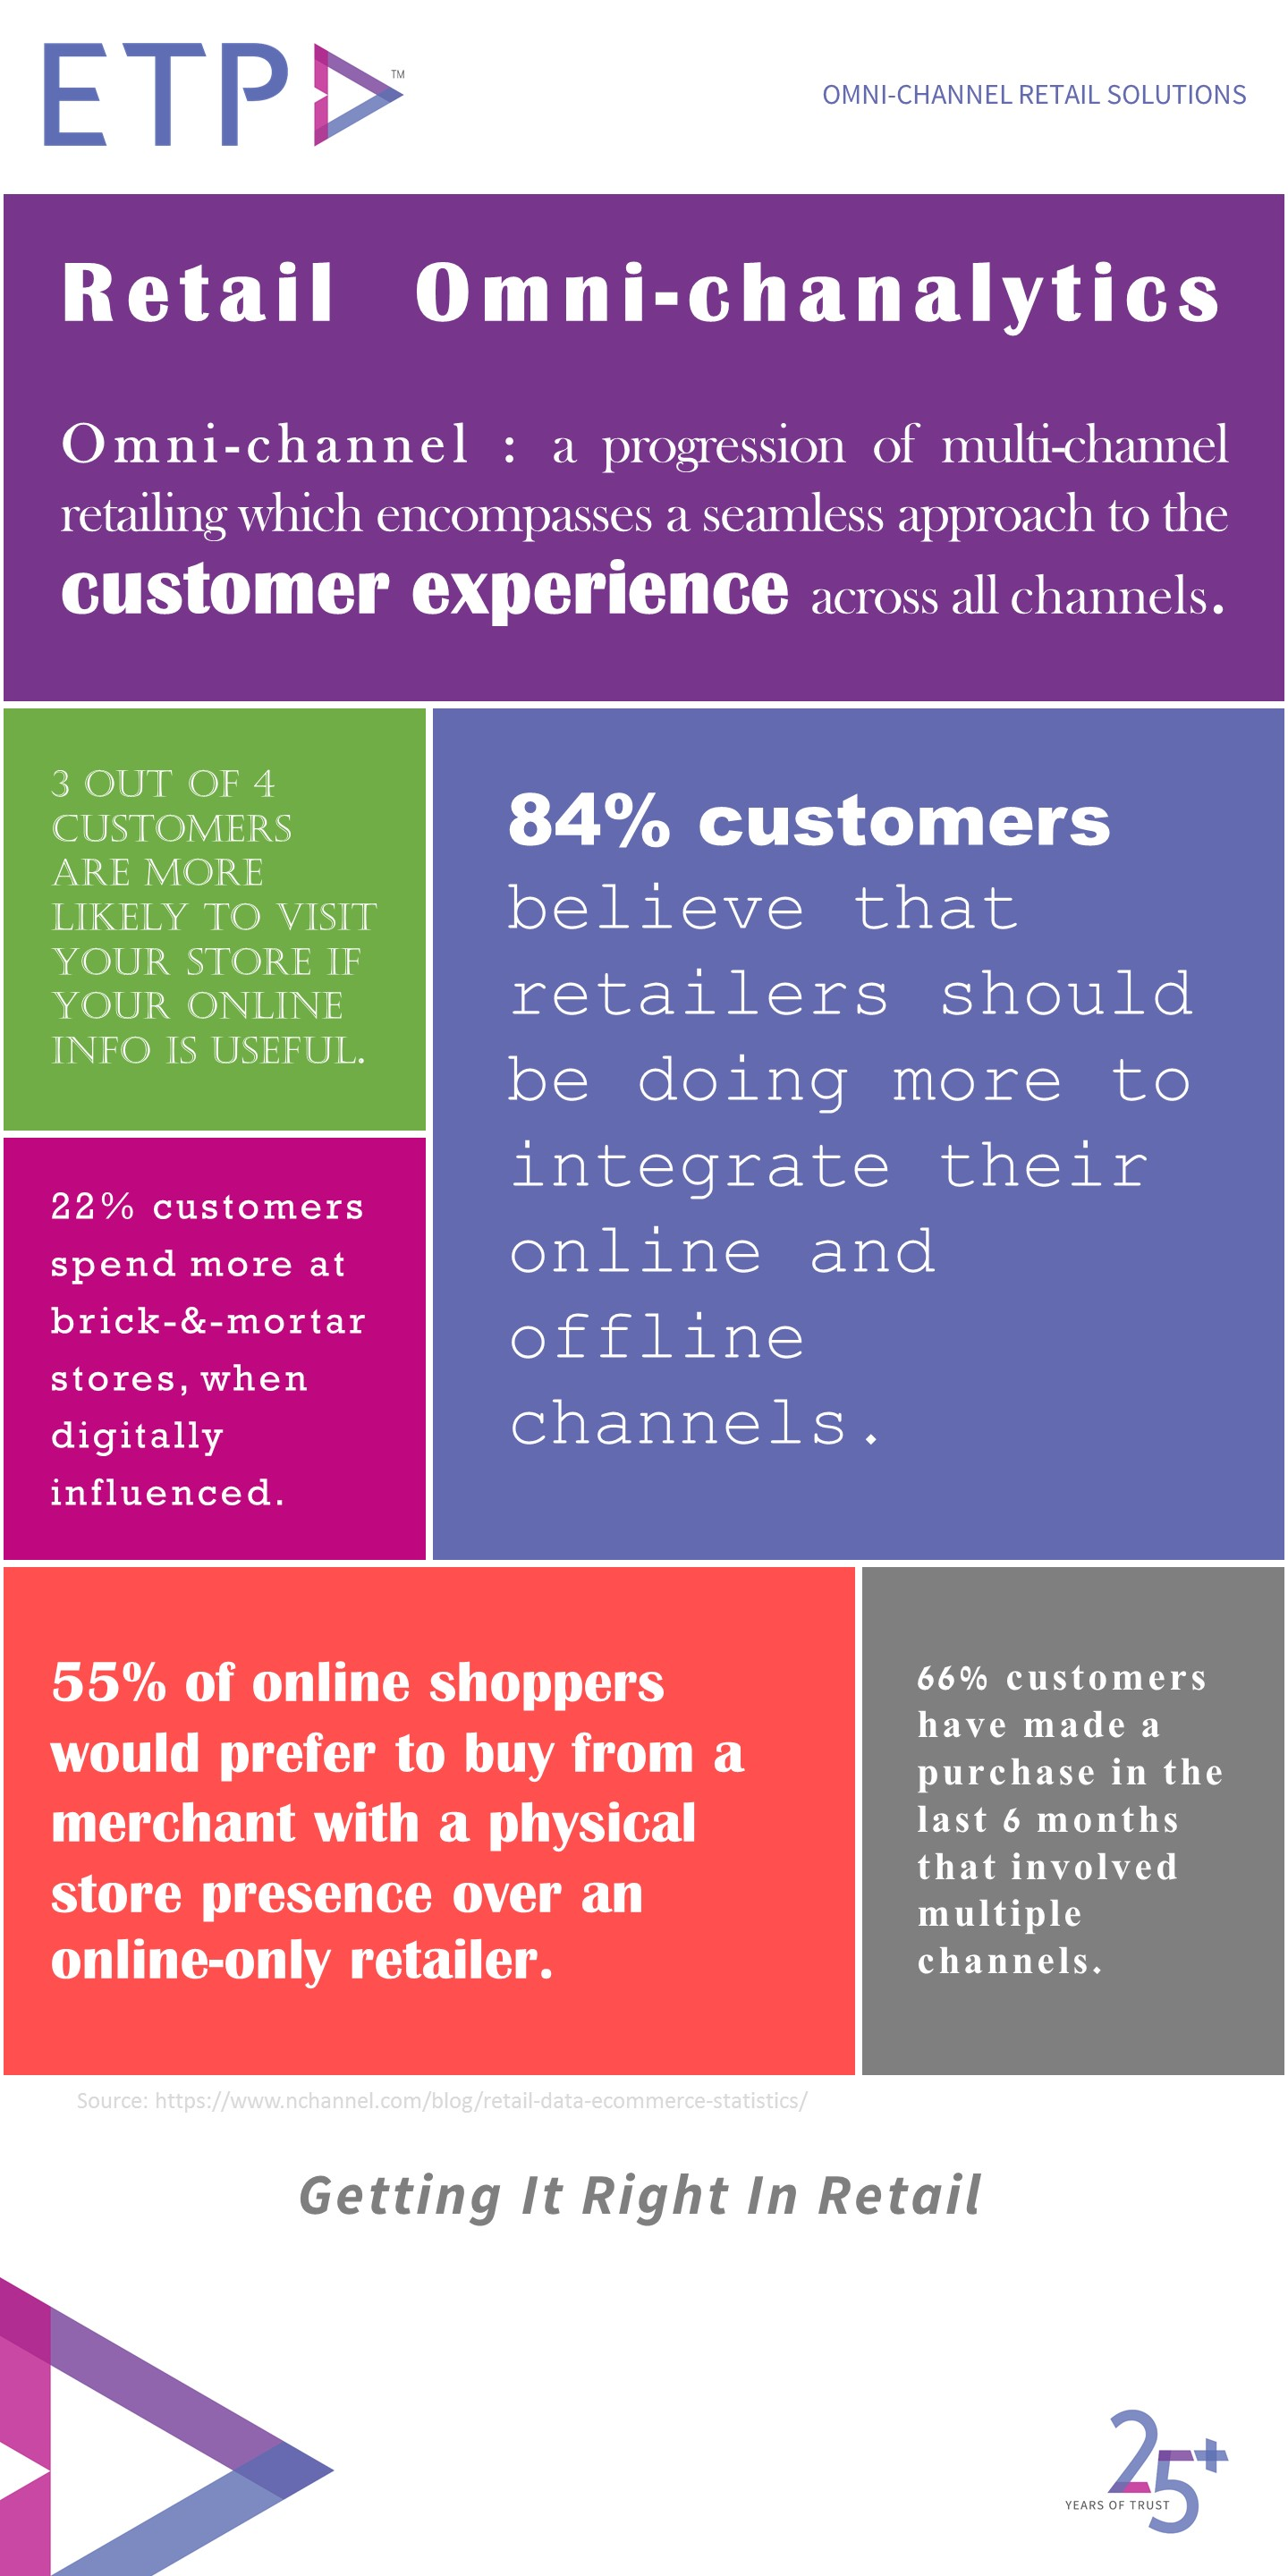 ETP blog - Omni-channel retail analytics